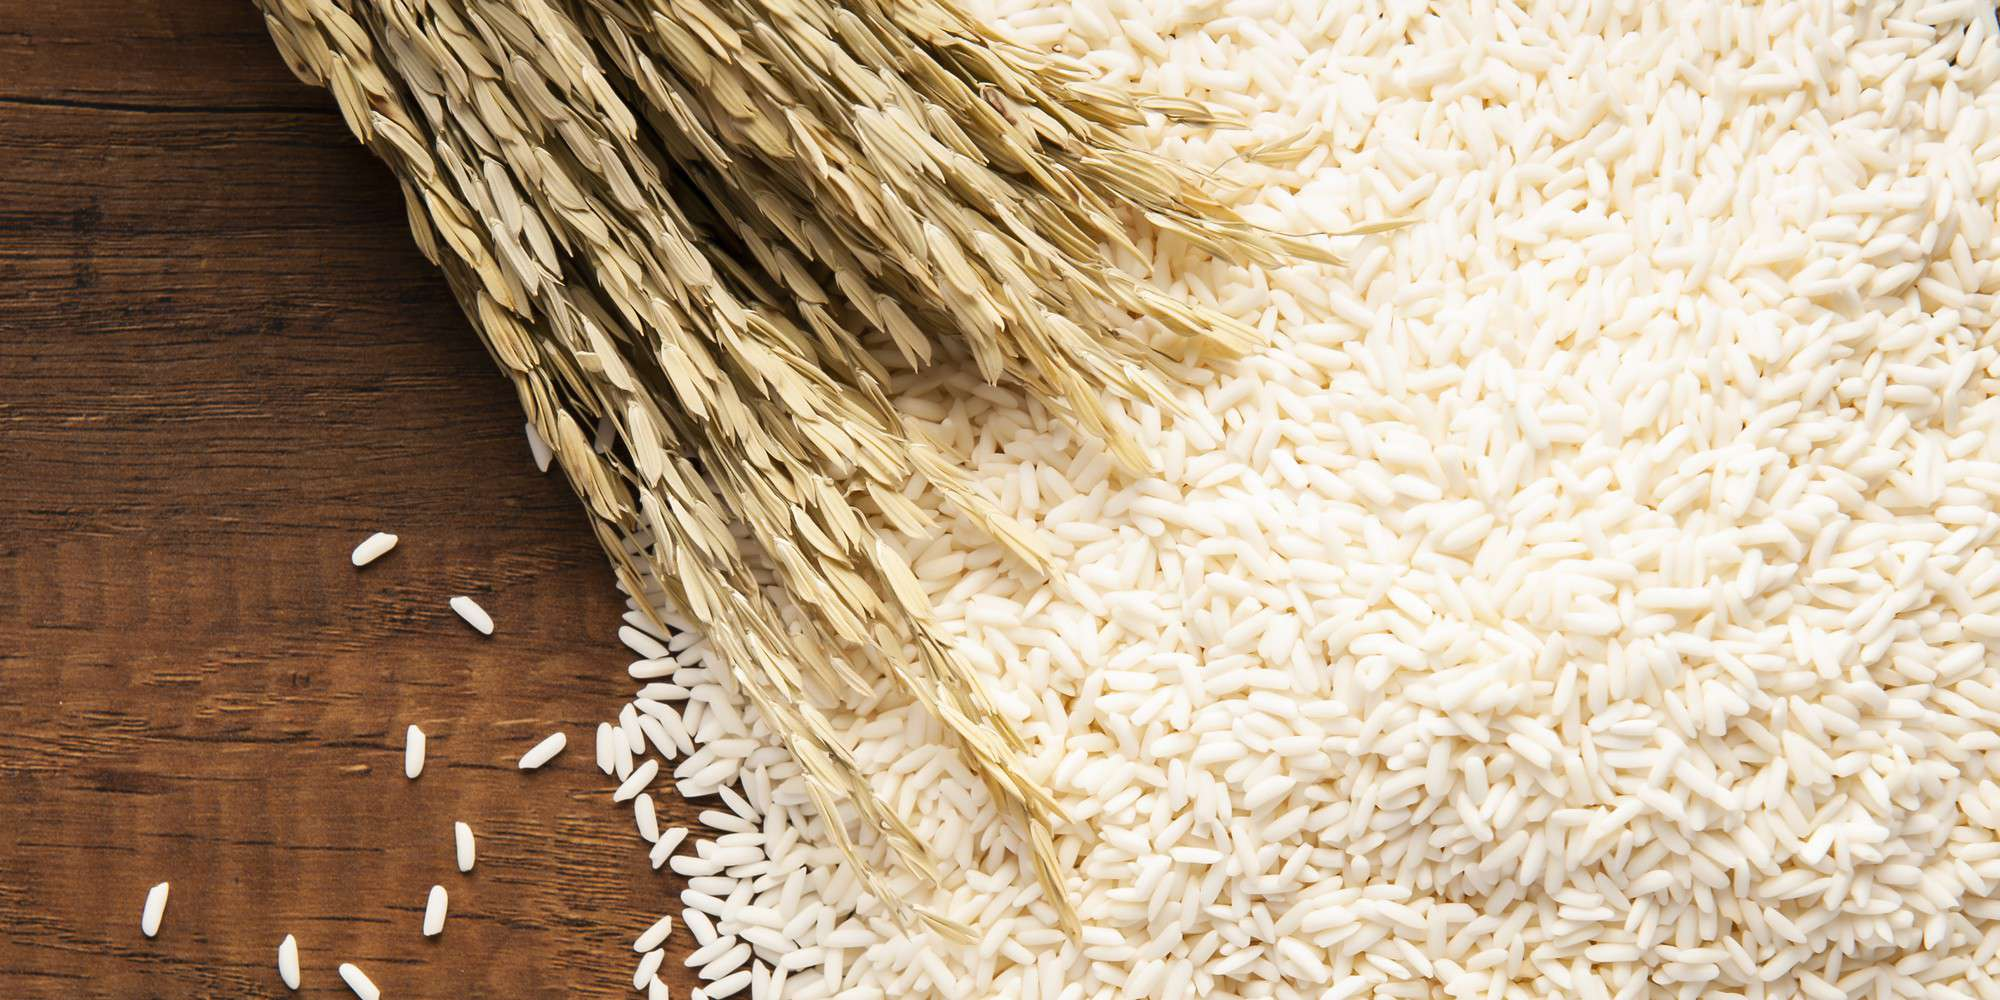 White rice, long-grain, parboiled, cooked